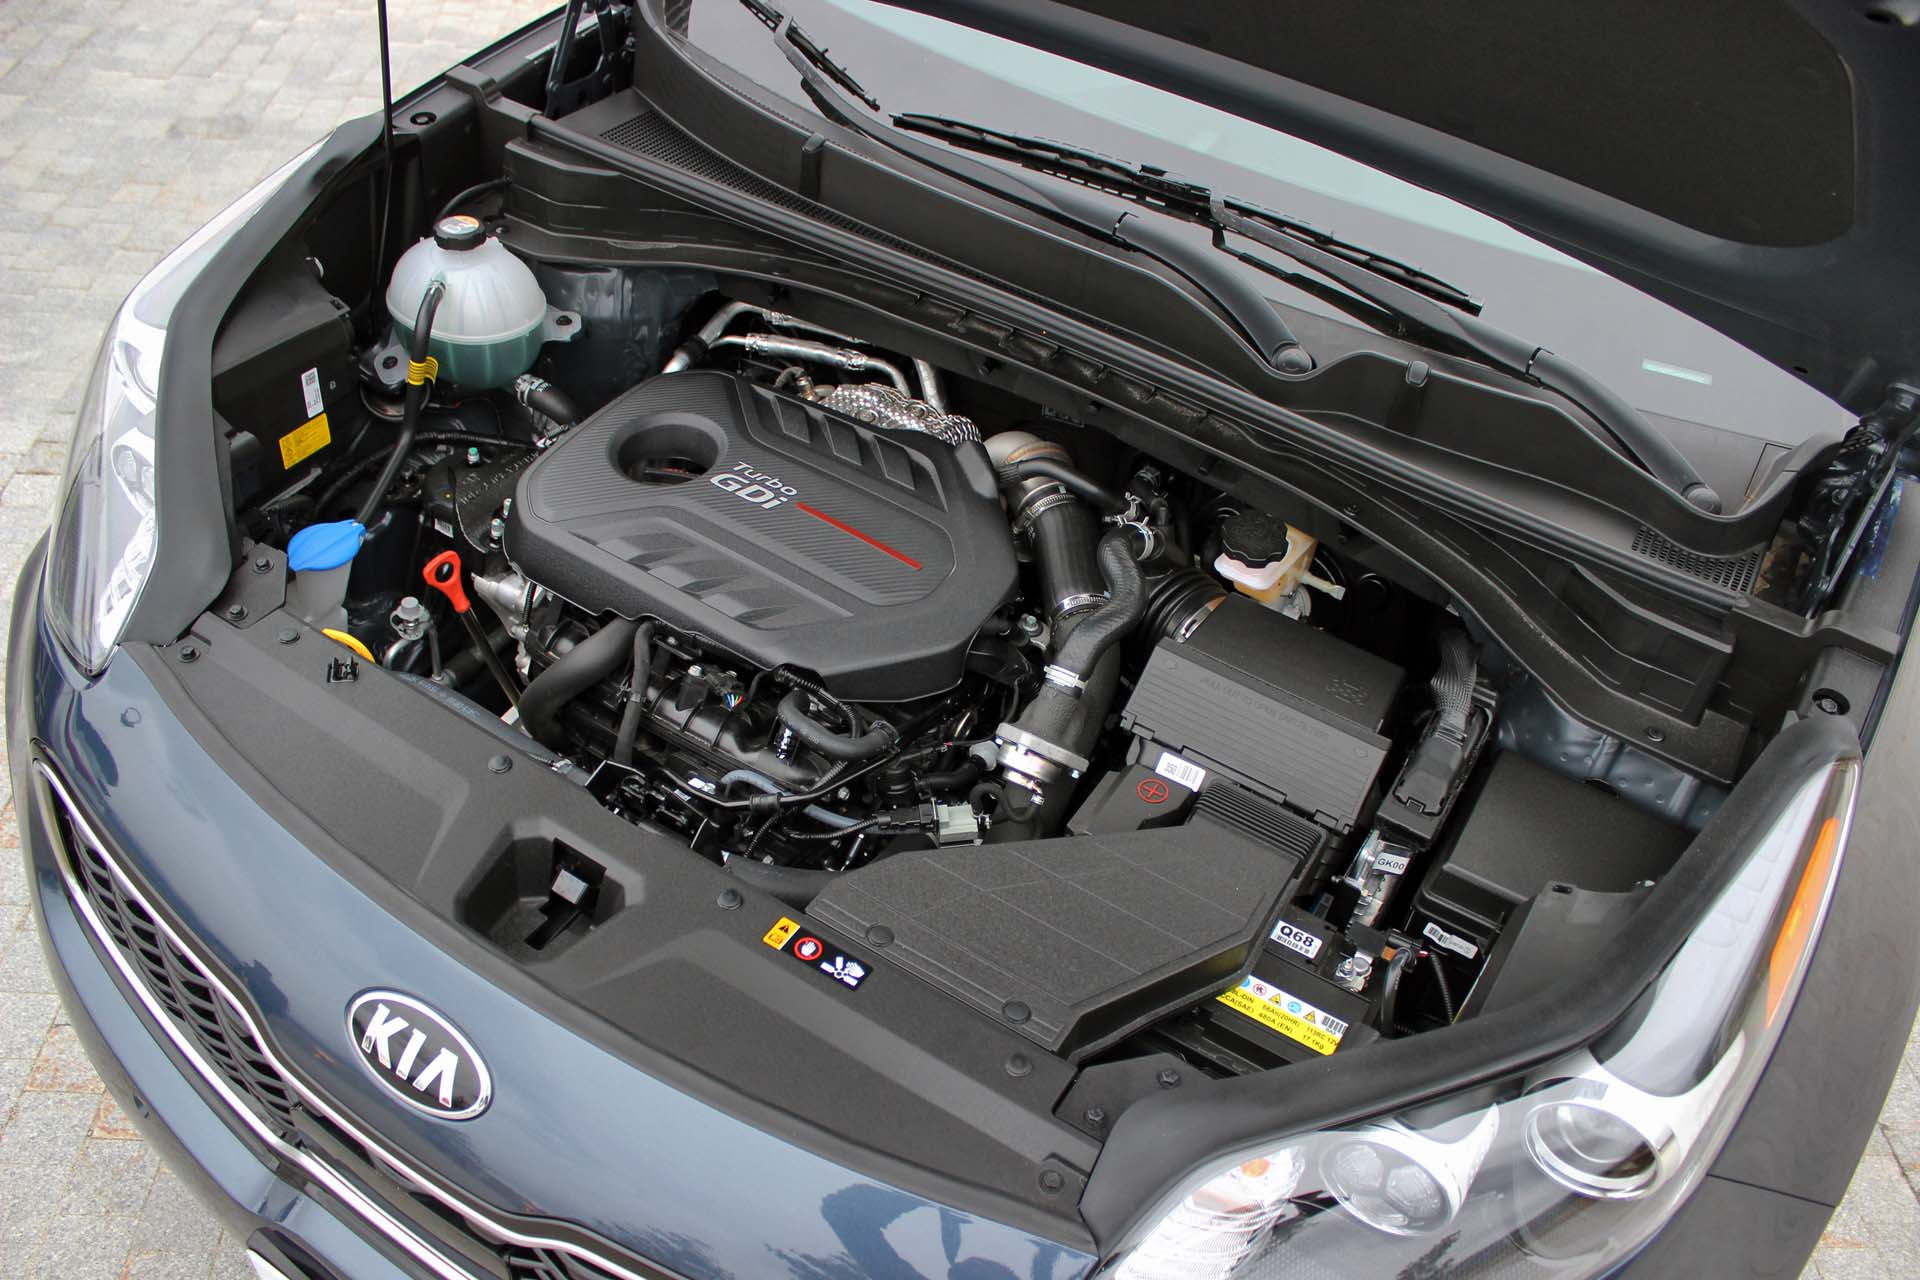 Yes, eagle-eyed Sportage-ophiles will see that the 2.0L turbocharged four-banger in the SX Turbo trim is down 23 hp and 9 lb-ft on the '16 model, which is too bad. However; peak torque arrives more quickly thanks to a faster-spooling turbocharger, which also helps improve fuel economy. The base engine, a naturally aspirated 2.4L, sees little change in its power output.